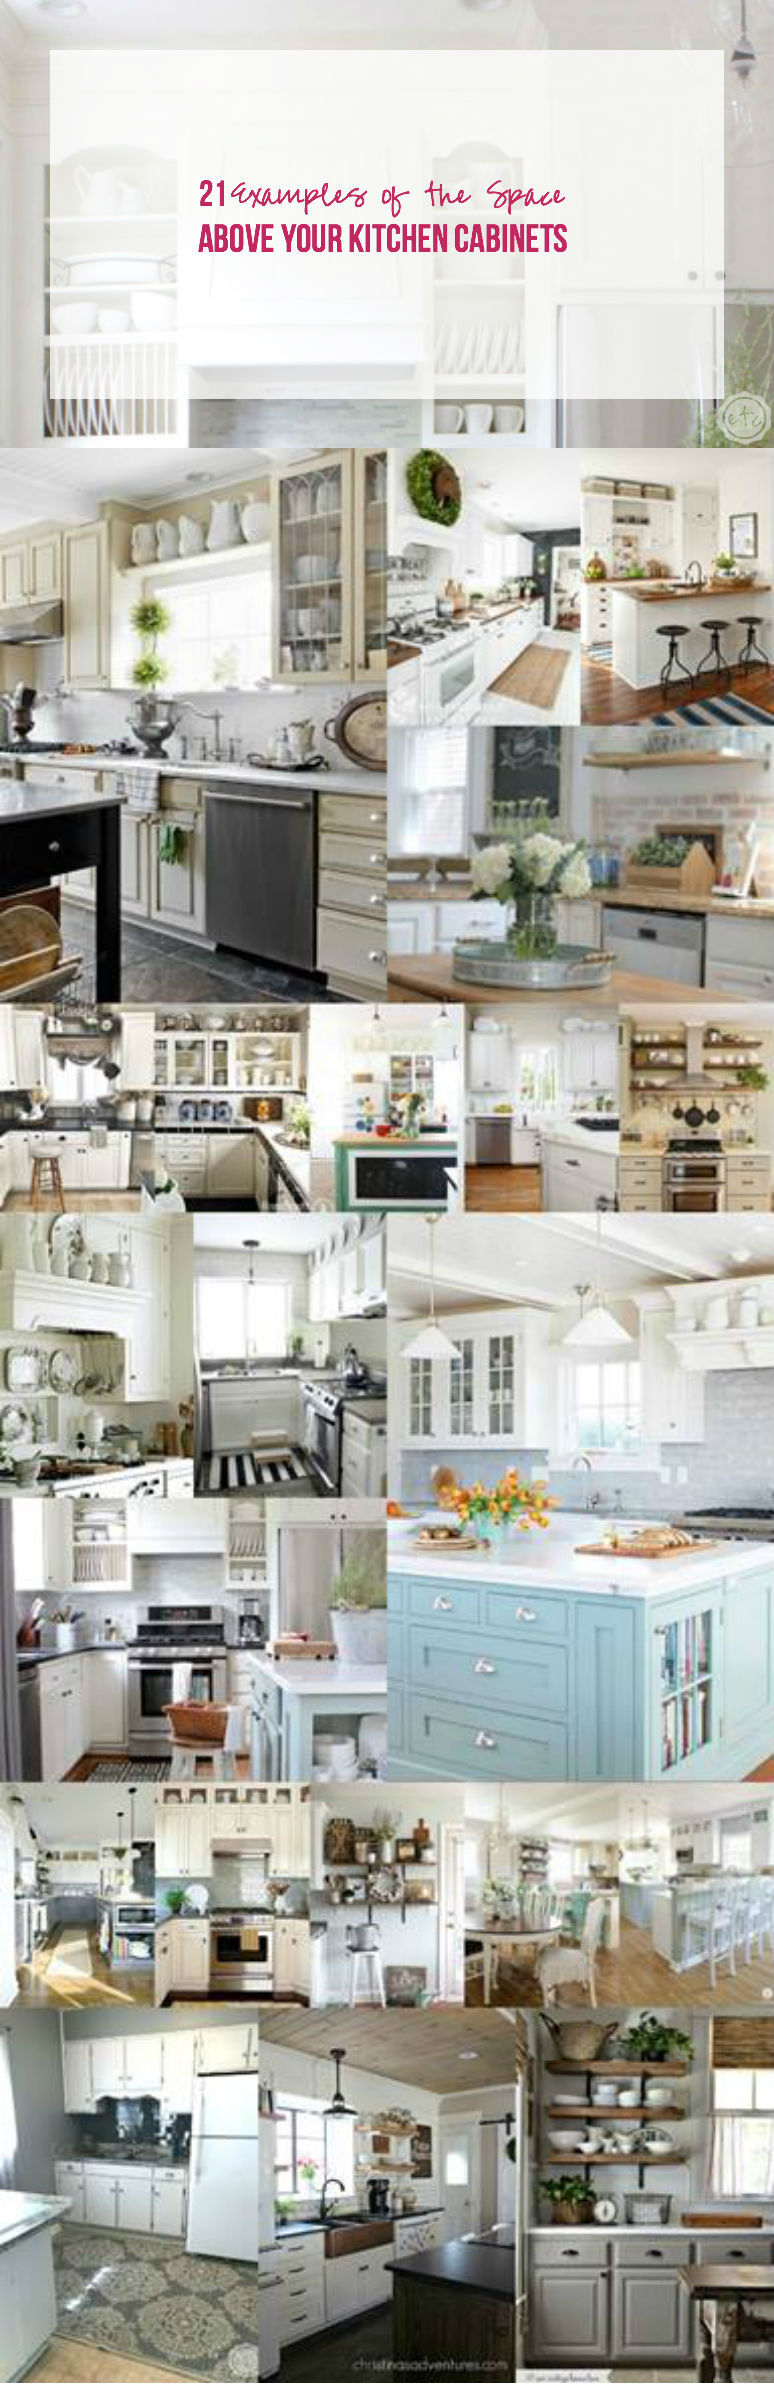 21 examples of the space above your kitchen cabinets What to do with space above cabinets